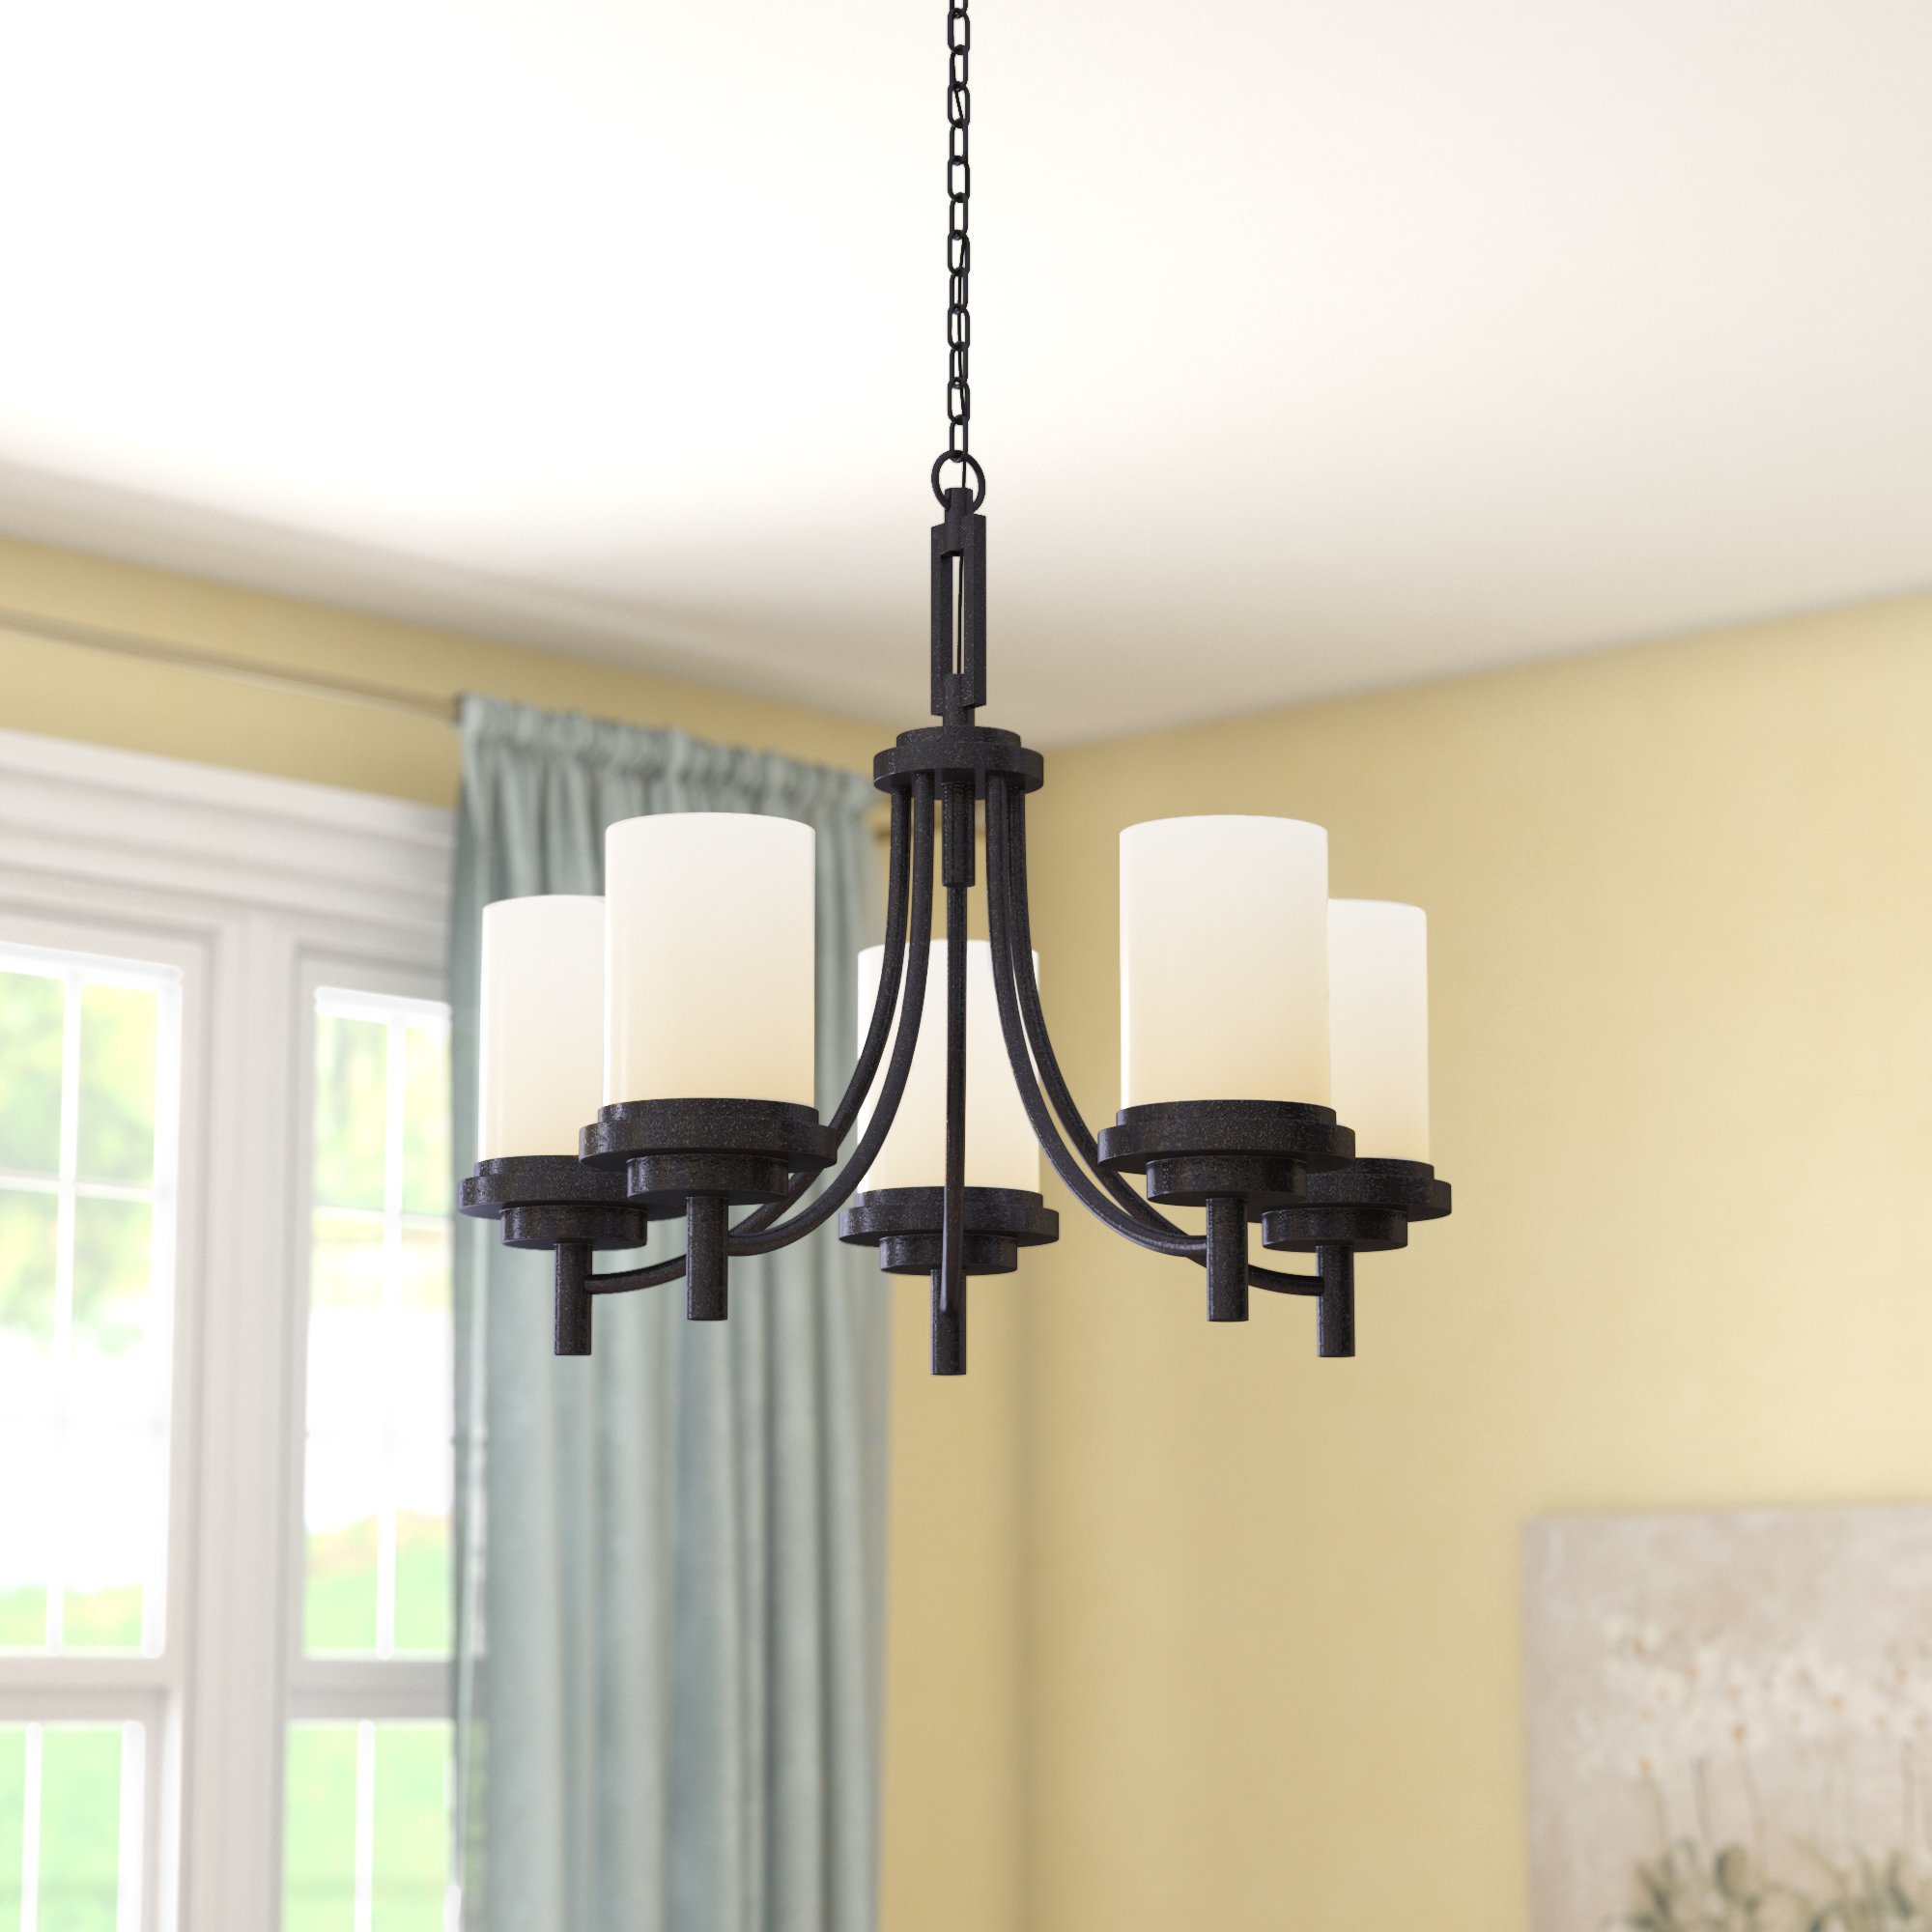 Tilford 5 Light Shaded Chandelier Throughout Widely Used Crofoot 5 Light Shaded Chandeliers (View 6 of 20)